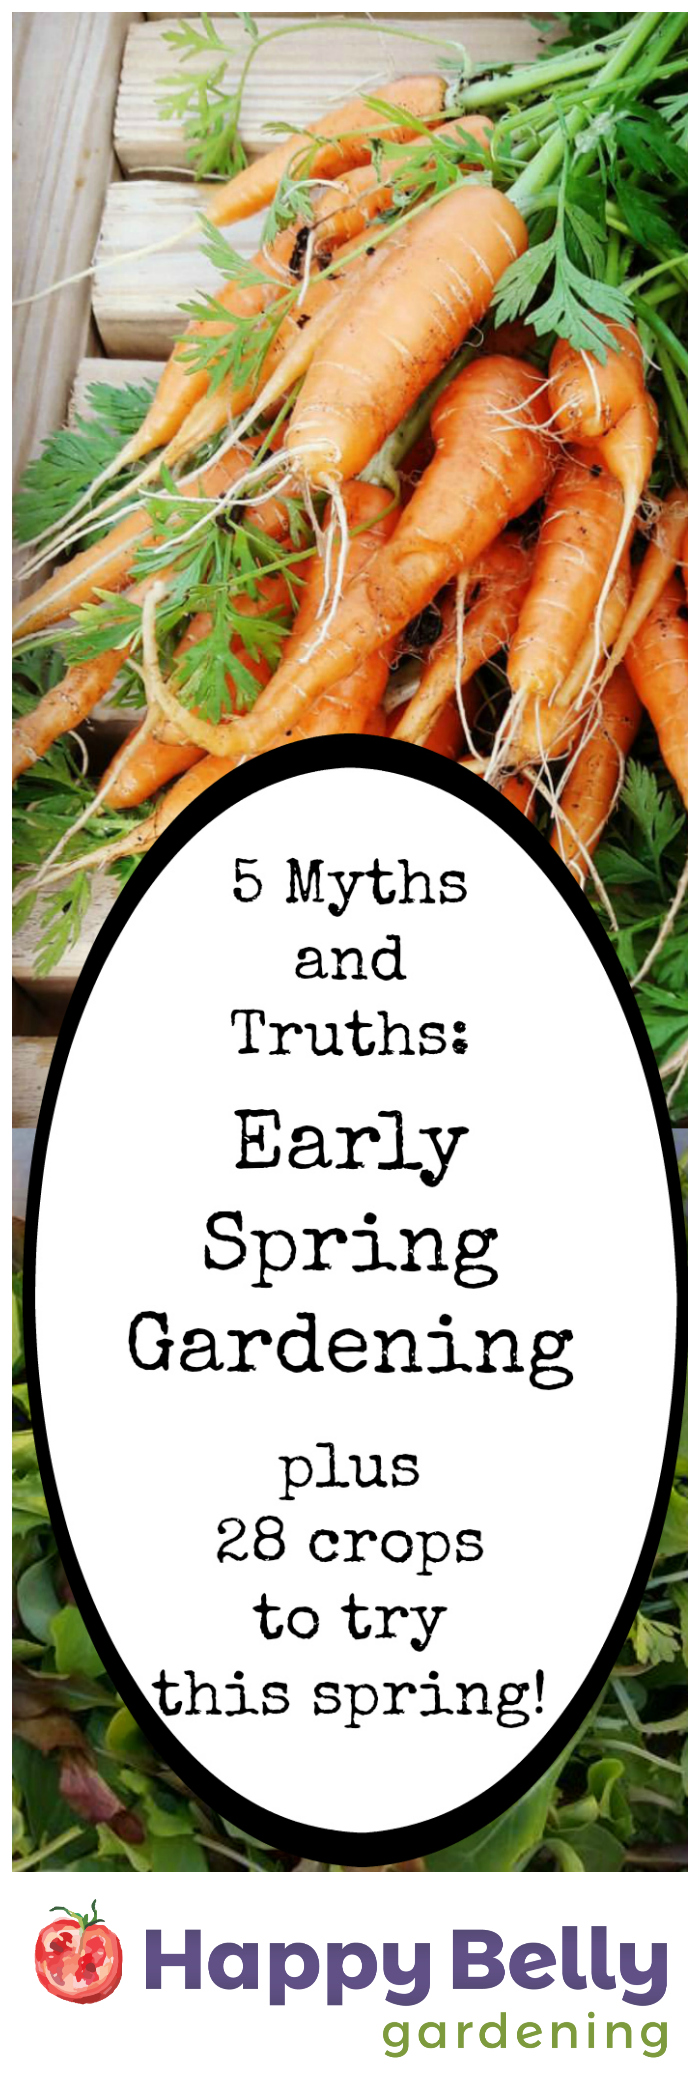 Five Myths and Truths - Early Spring Gardening - plus 28 crops to try this spring.jpg